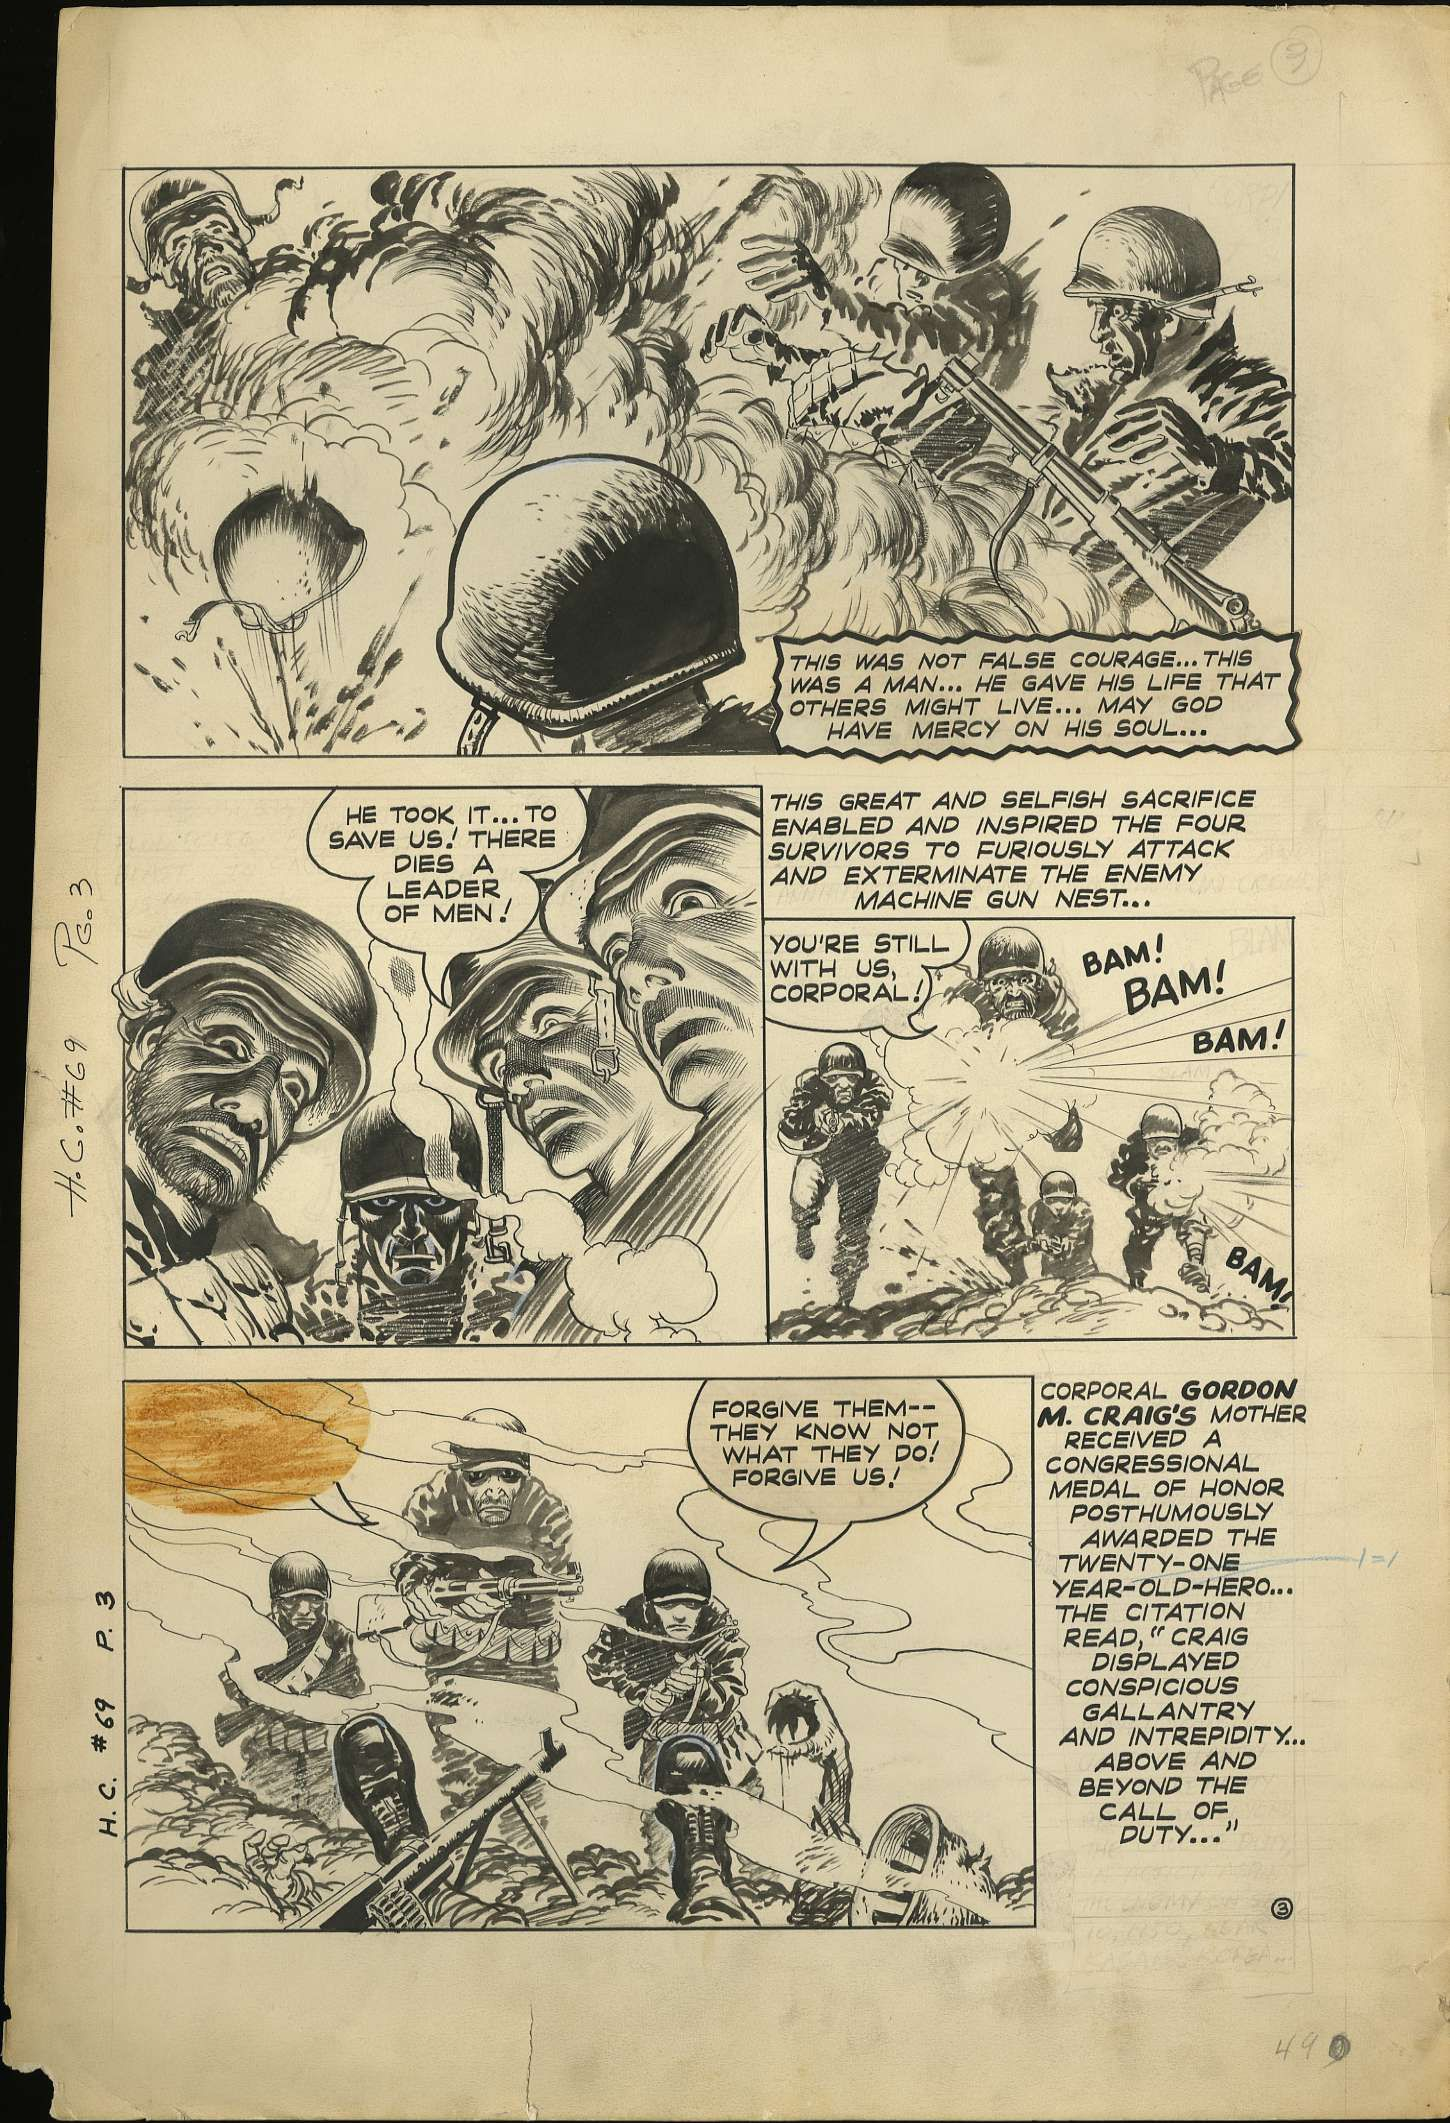 heroic comics 69 beyond the call of duty complete original 3 heroic comics 69 beyond the call of duty complete original 3 page story art page 2 eastern color nov 1951 james halperin private collecti